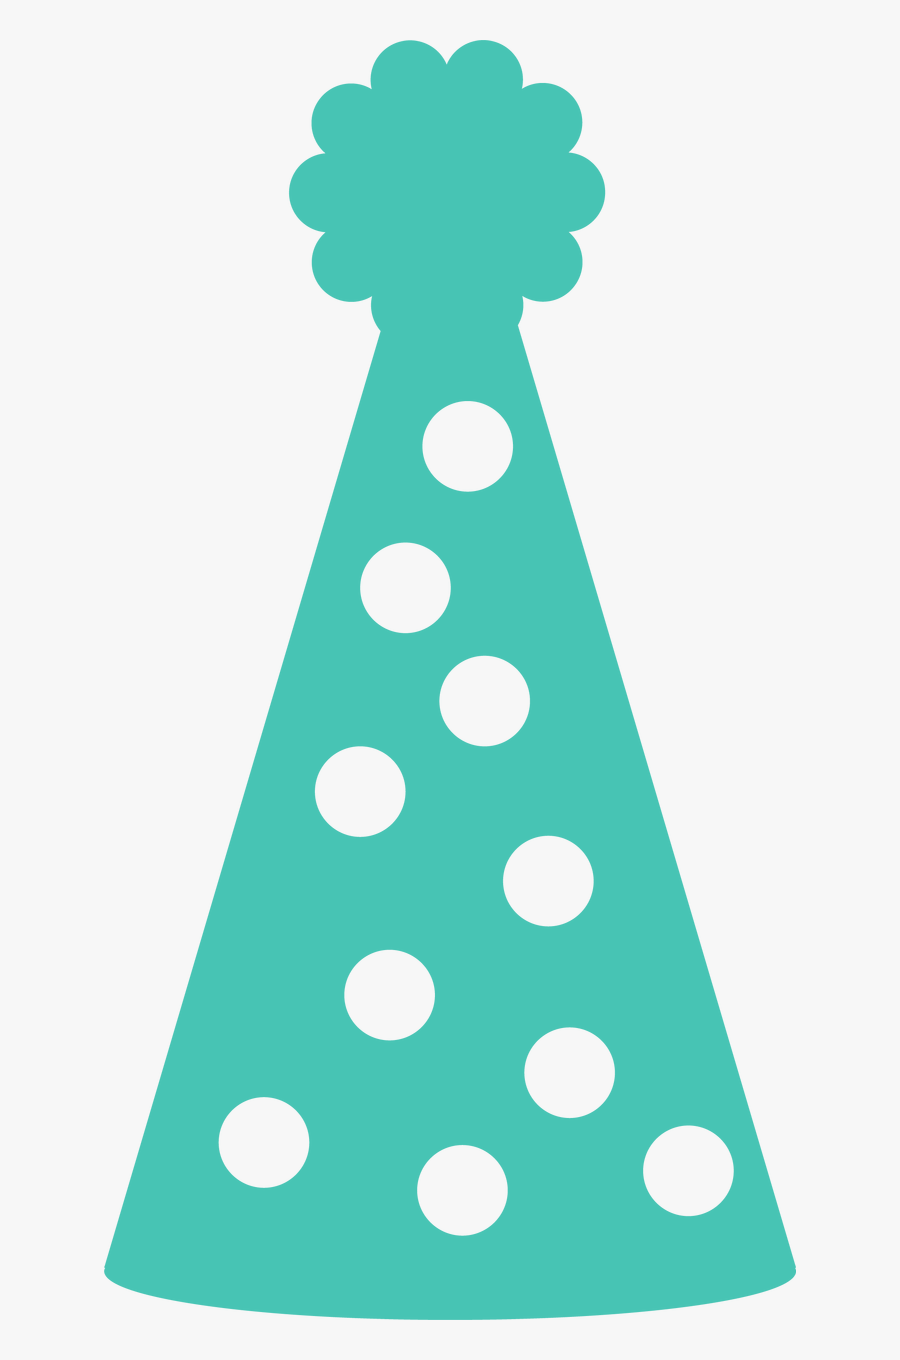 Hd Party Hat - Polka Dot, Transparent Clipart